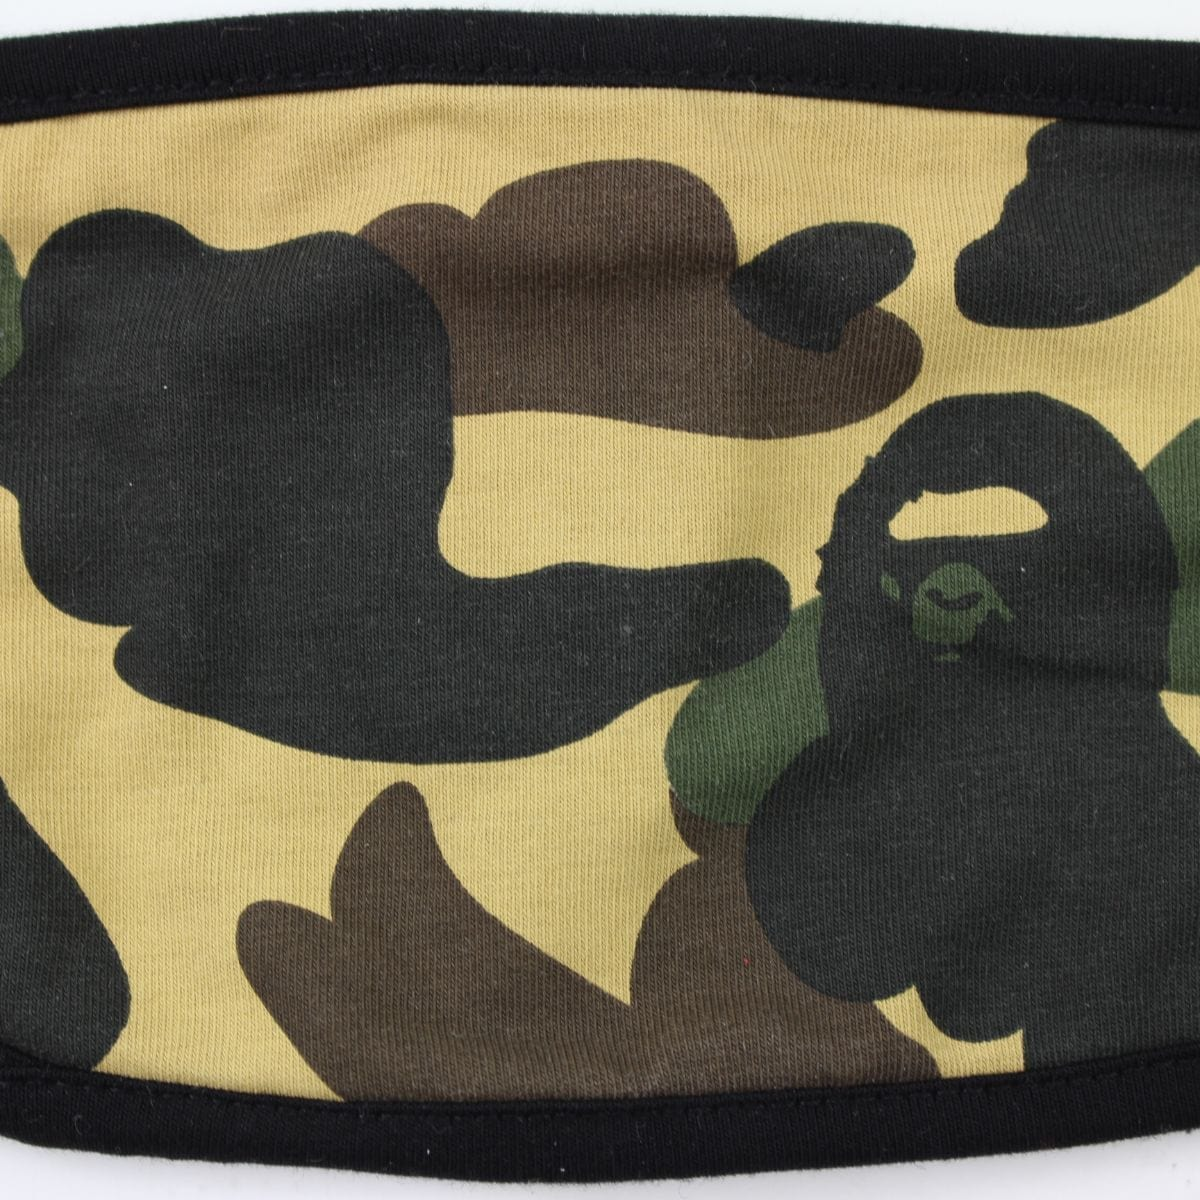 Bape 1st Yellow Camo Facemask - SaruGeneral